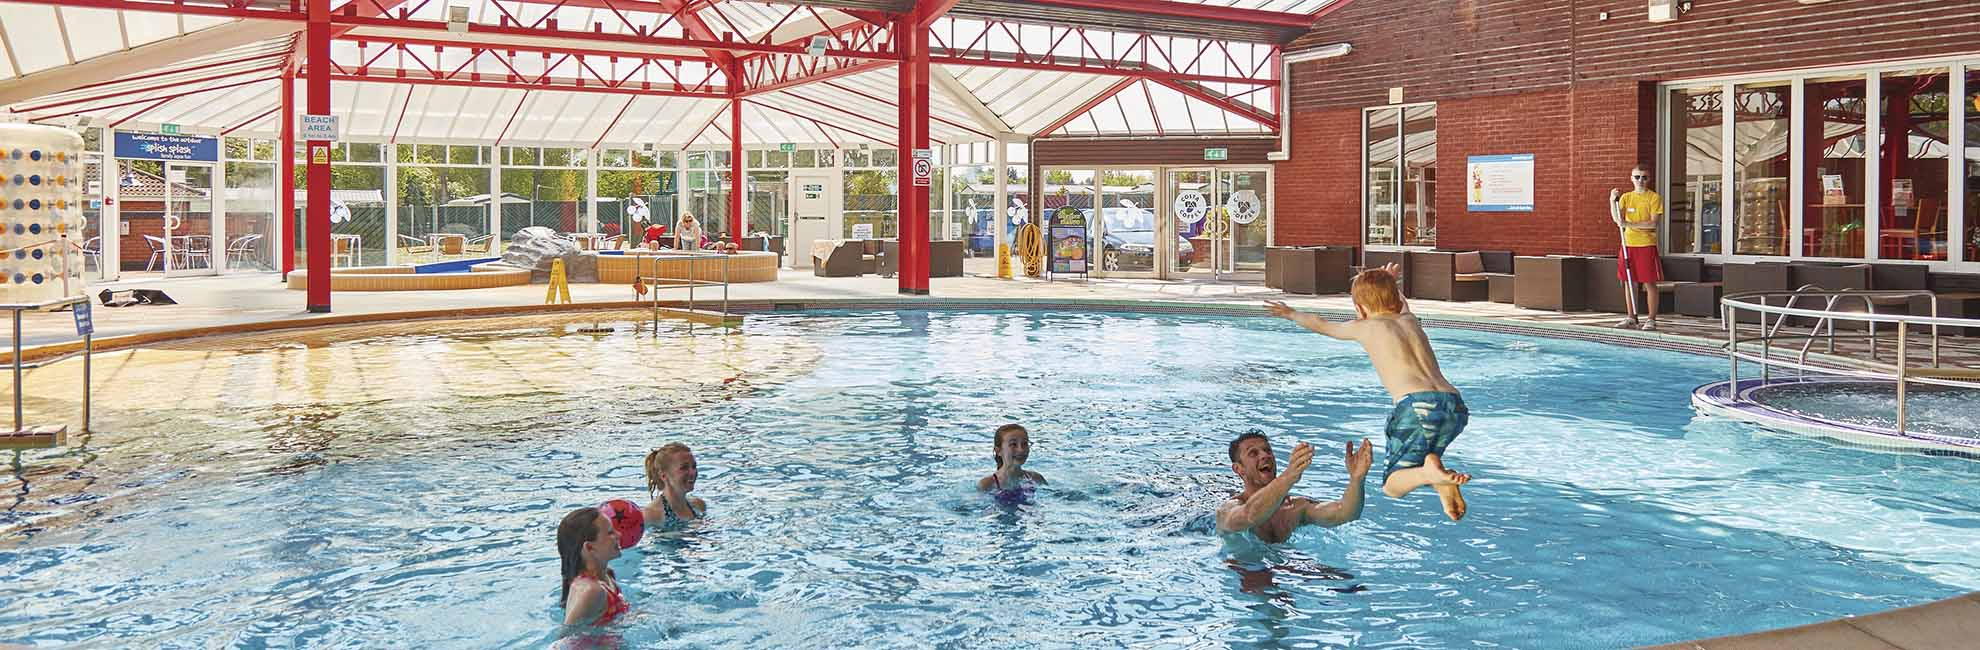 A family playing by the outdoor swimming pool at Cherry Tree Holiday Park in Great Yarmouth